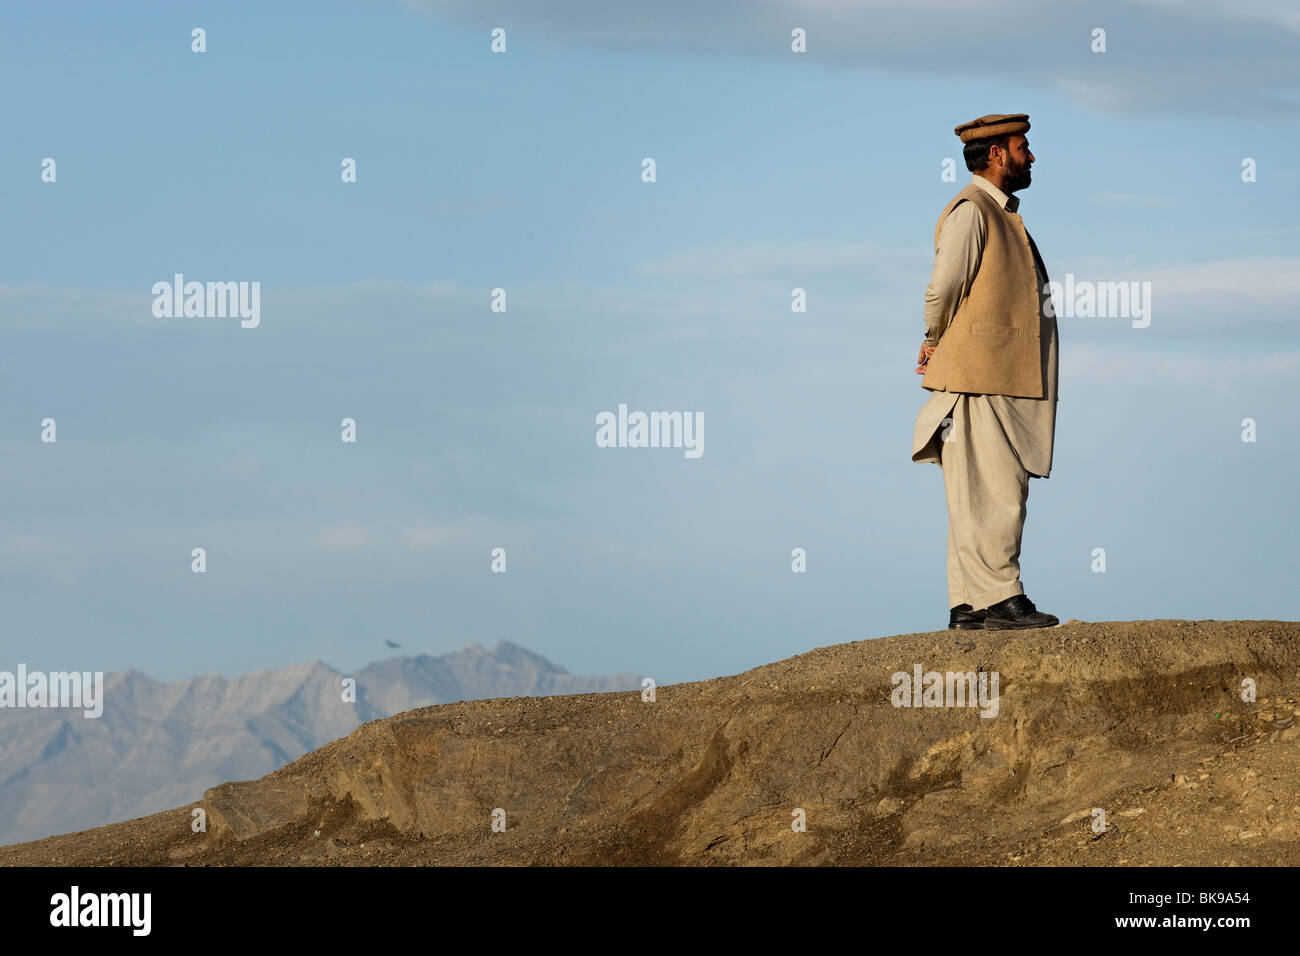 An Afghan man stands on a hill overlooking Kabul dressed in traditional clothes - Stock Image